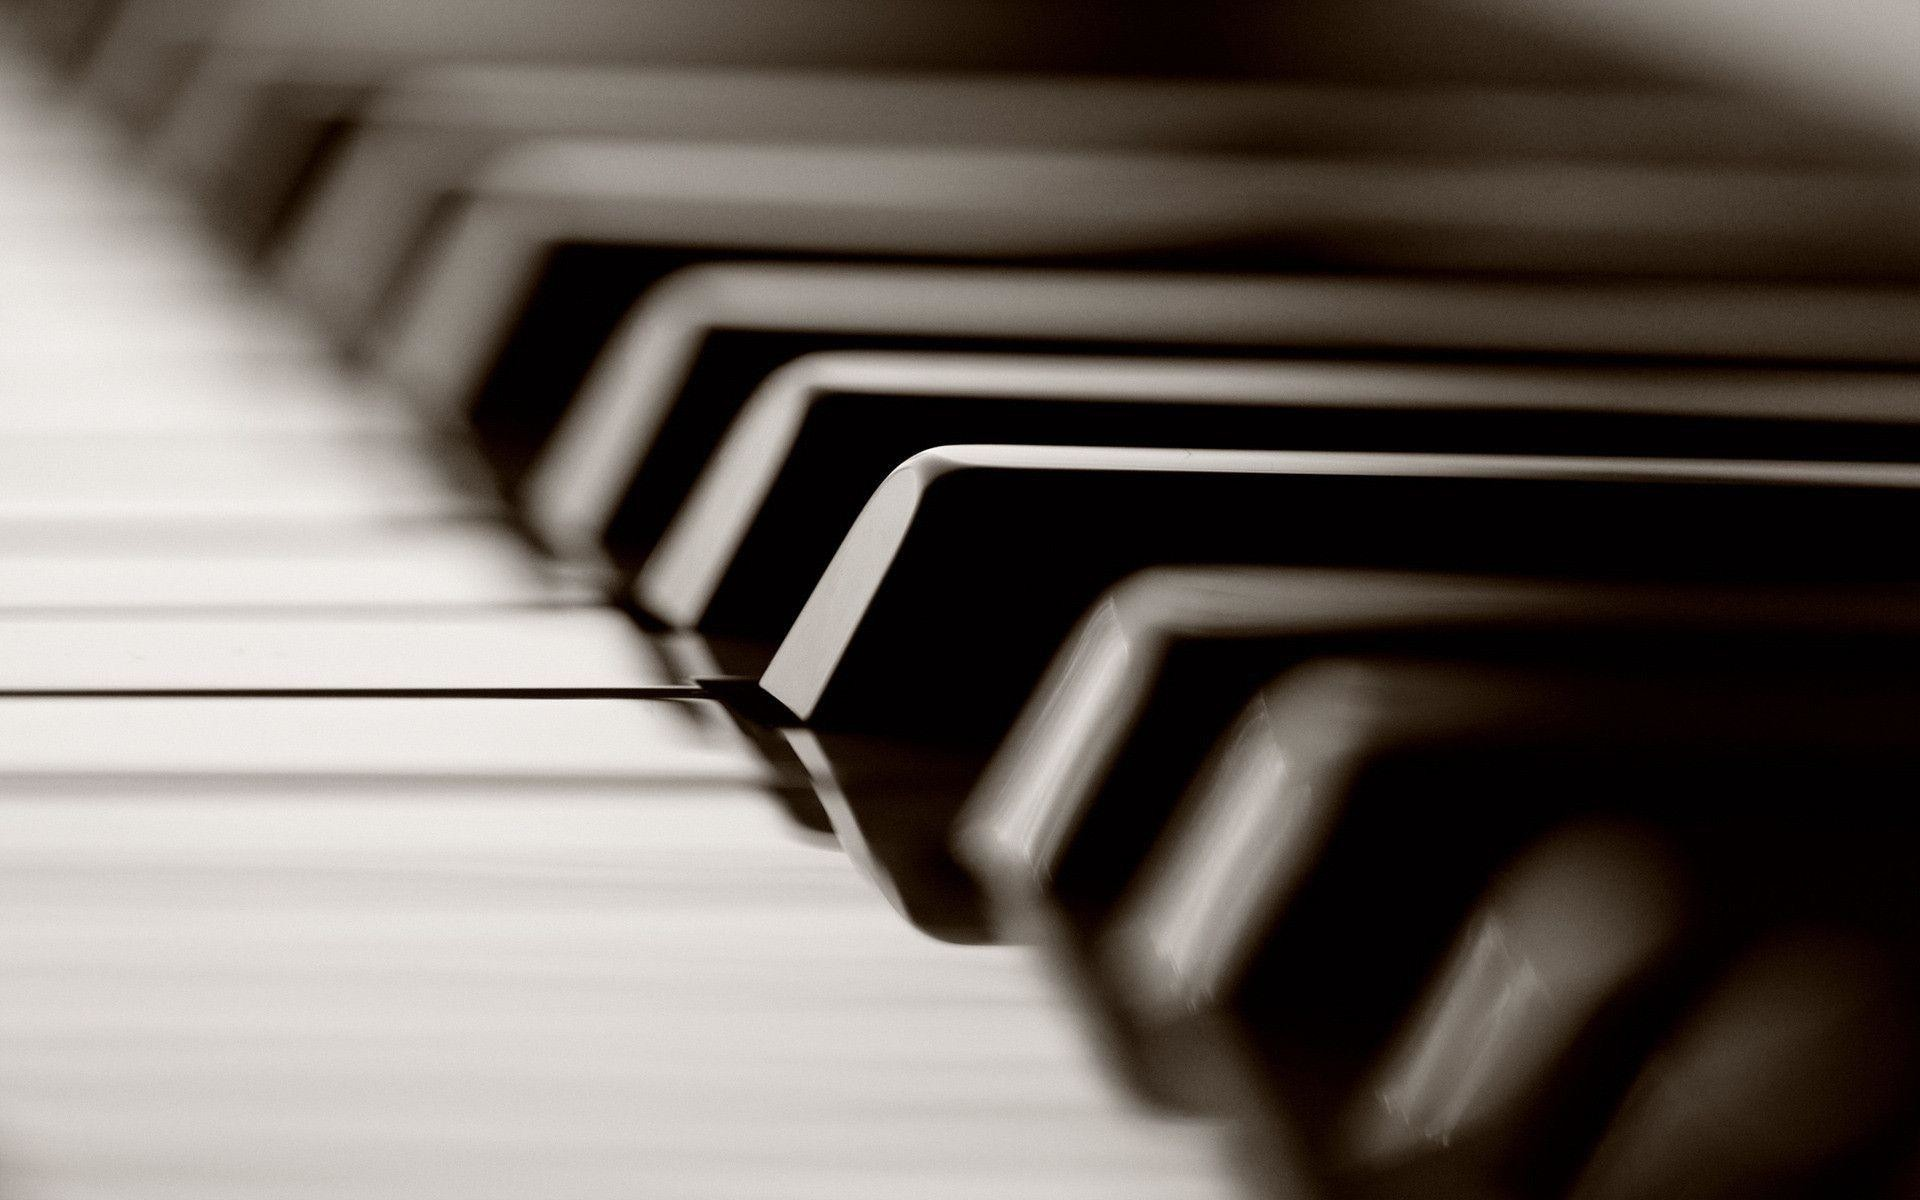 1920x1200 Piano Wallpaper | Large HD Wallpaper Database